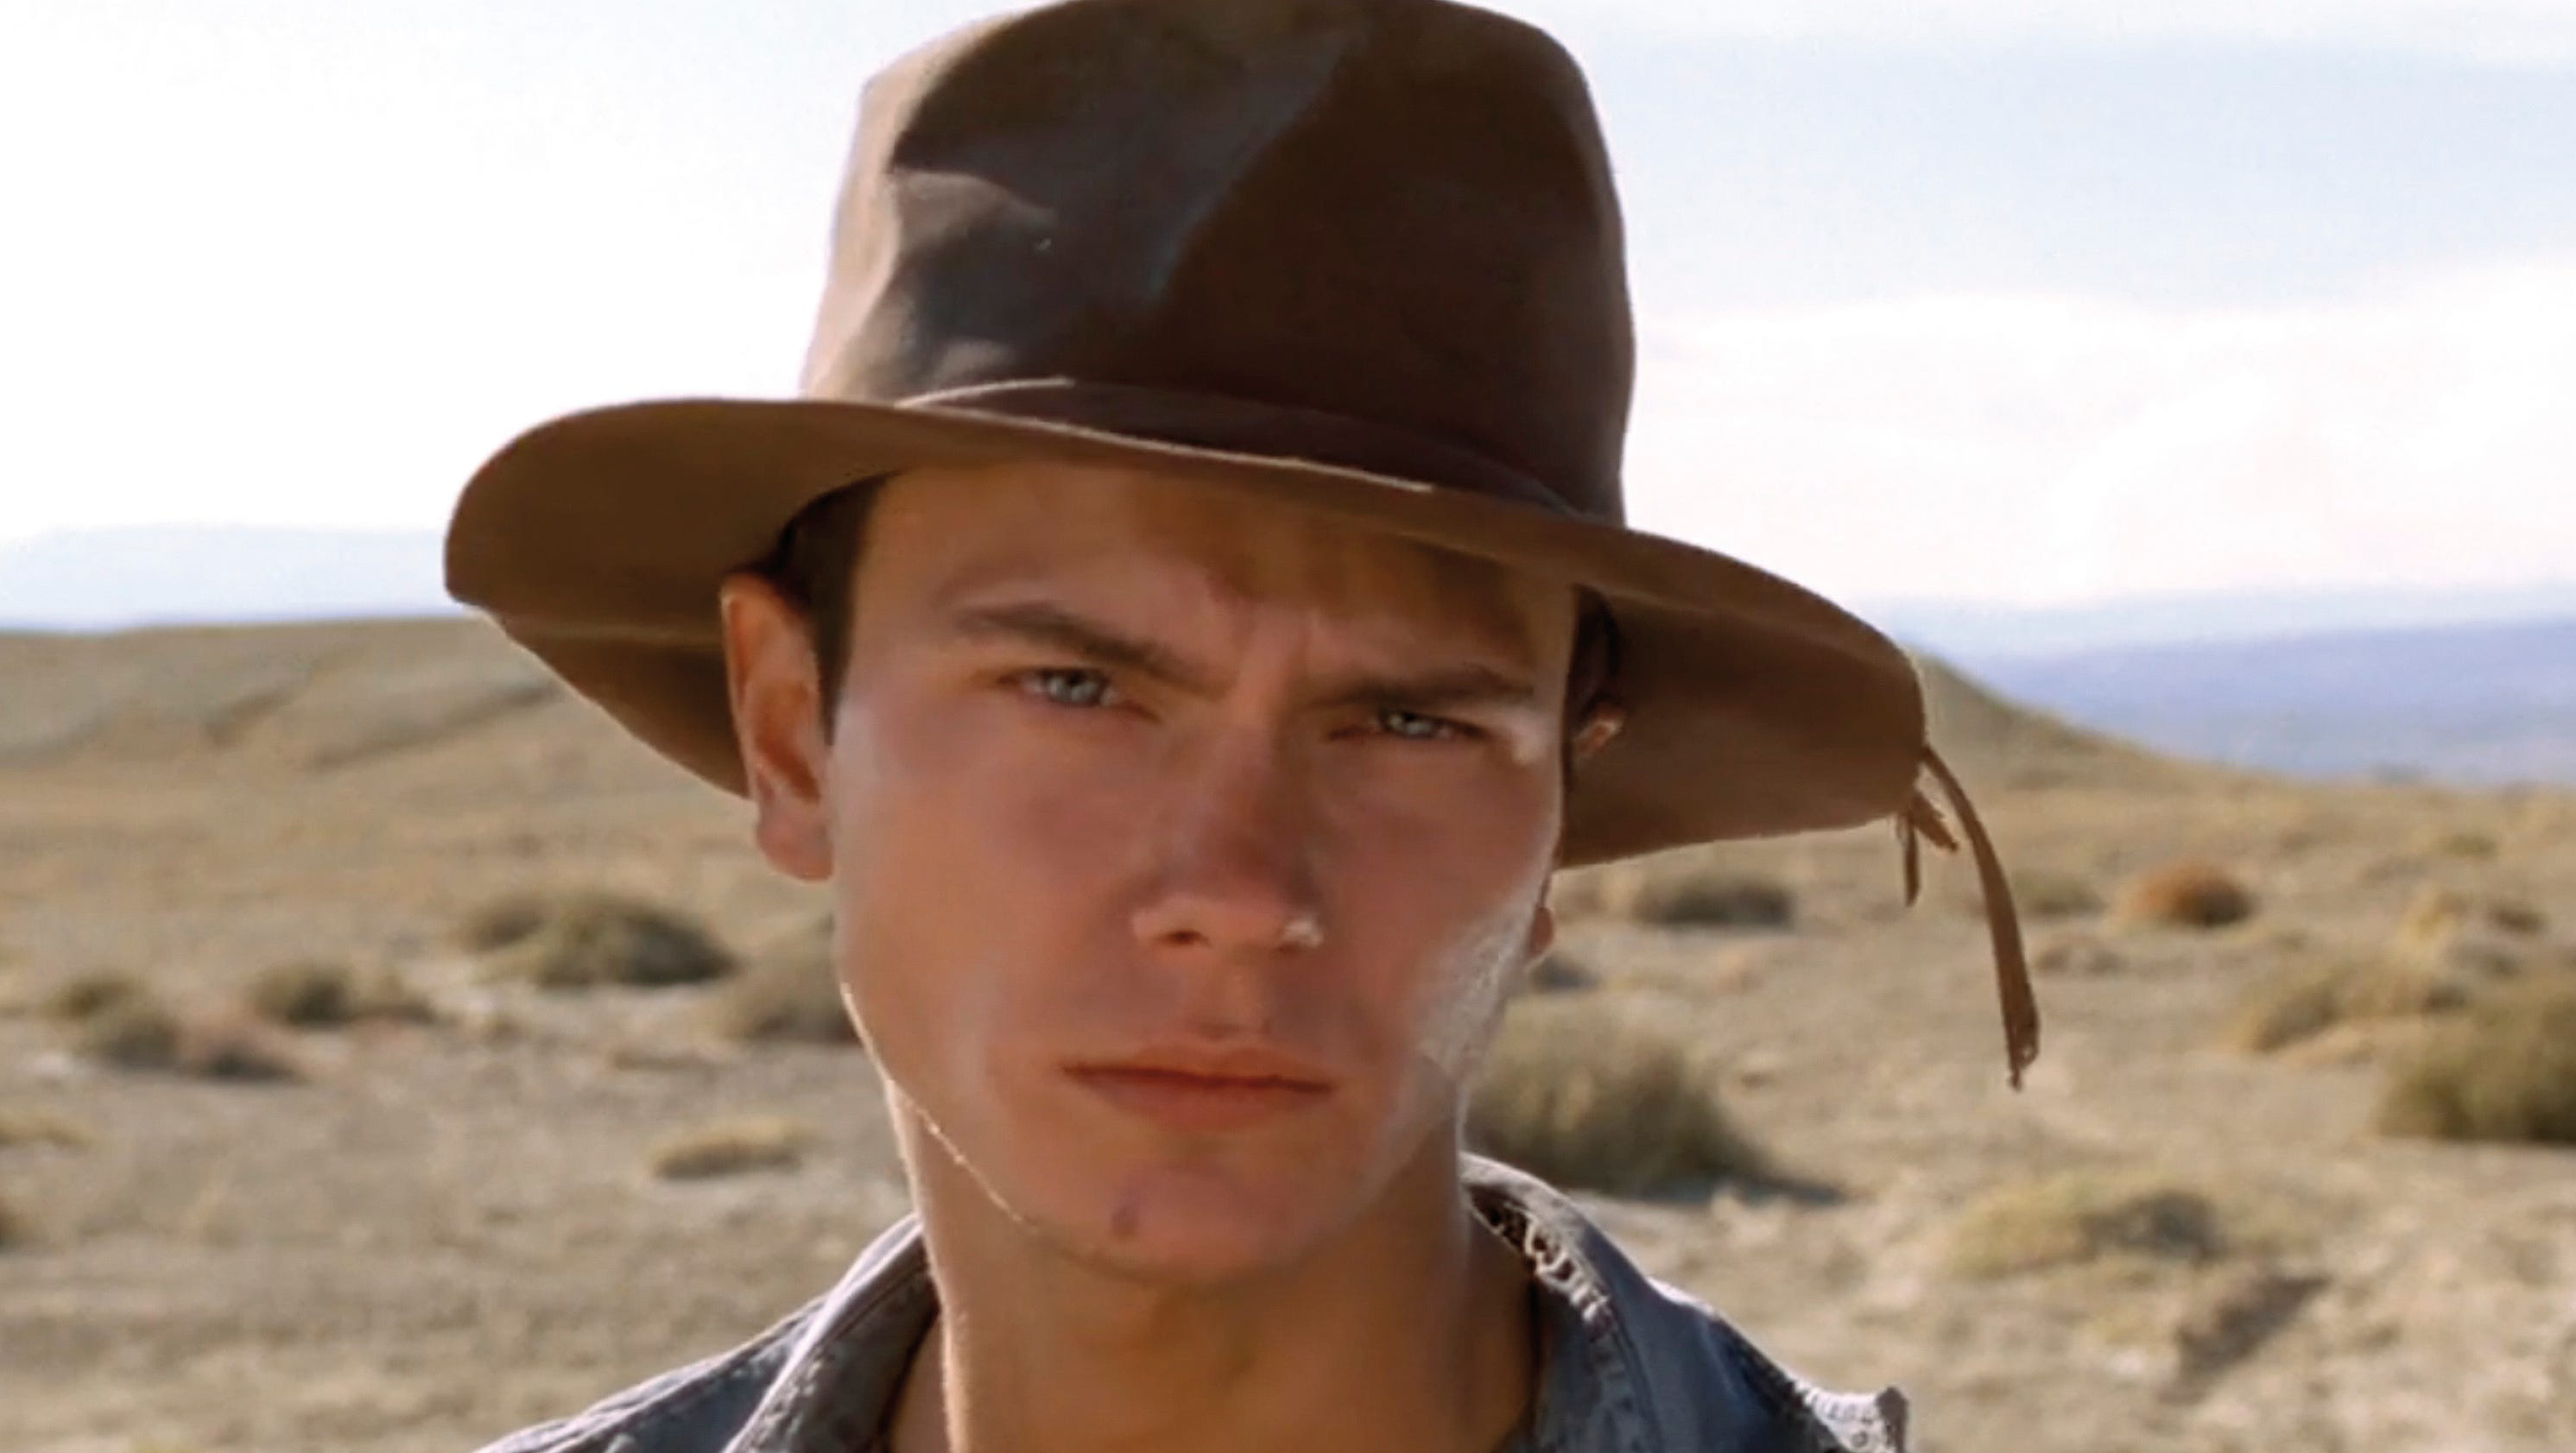 River Phoenix fascination continues 20 years after death